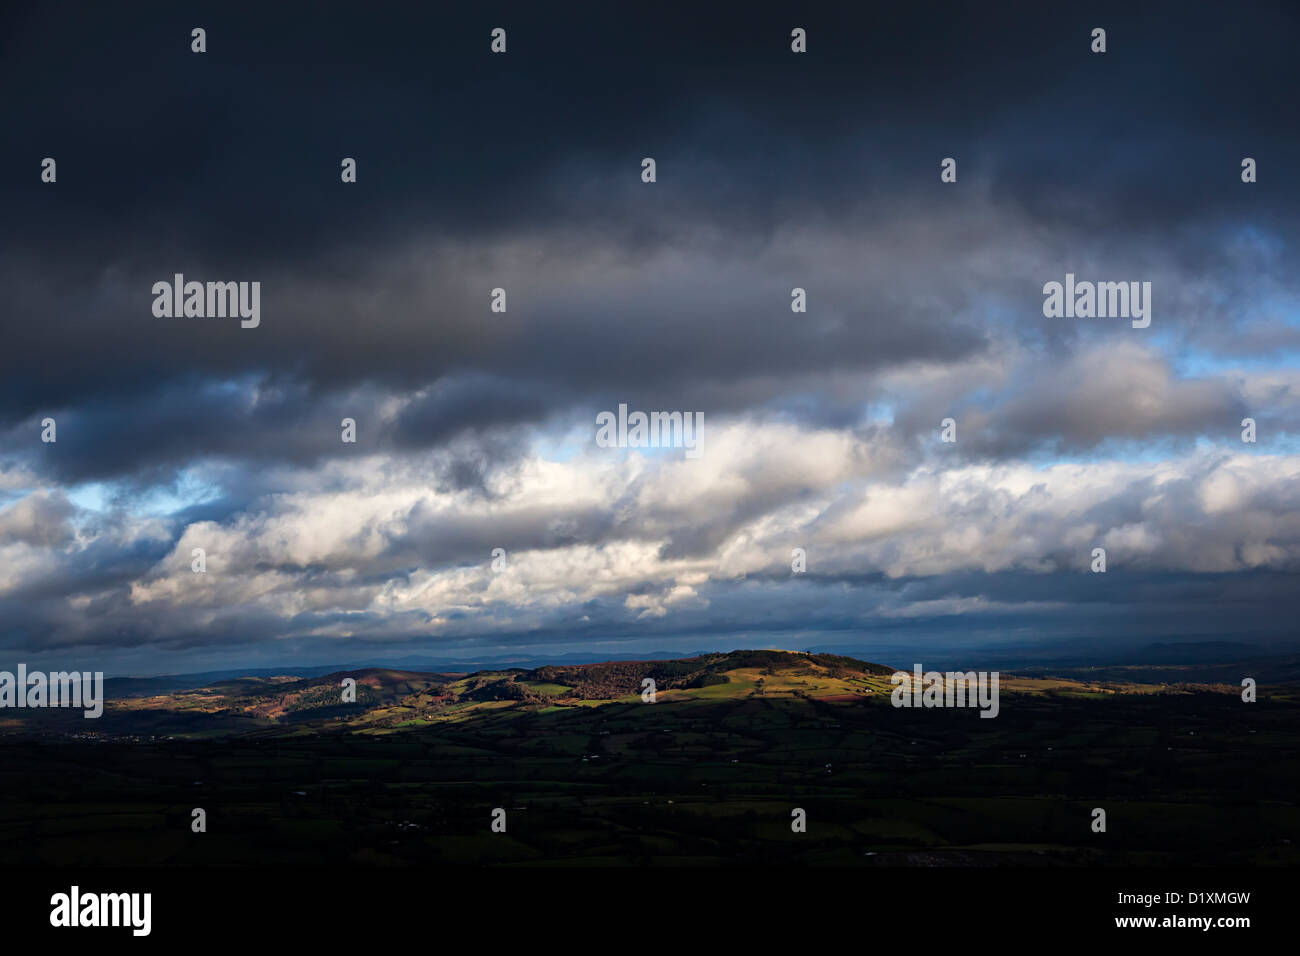 Dark skies over fields and moors lit through a gap in the clouds, from the Skirrid, Wales, UK - Stock Image